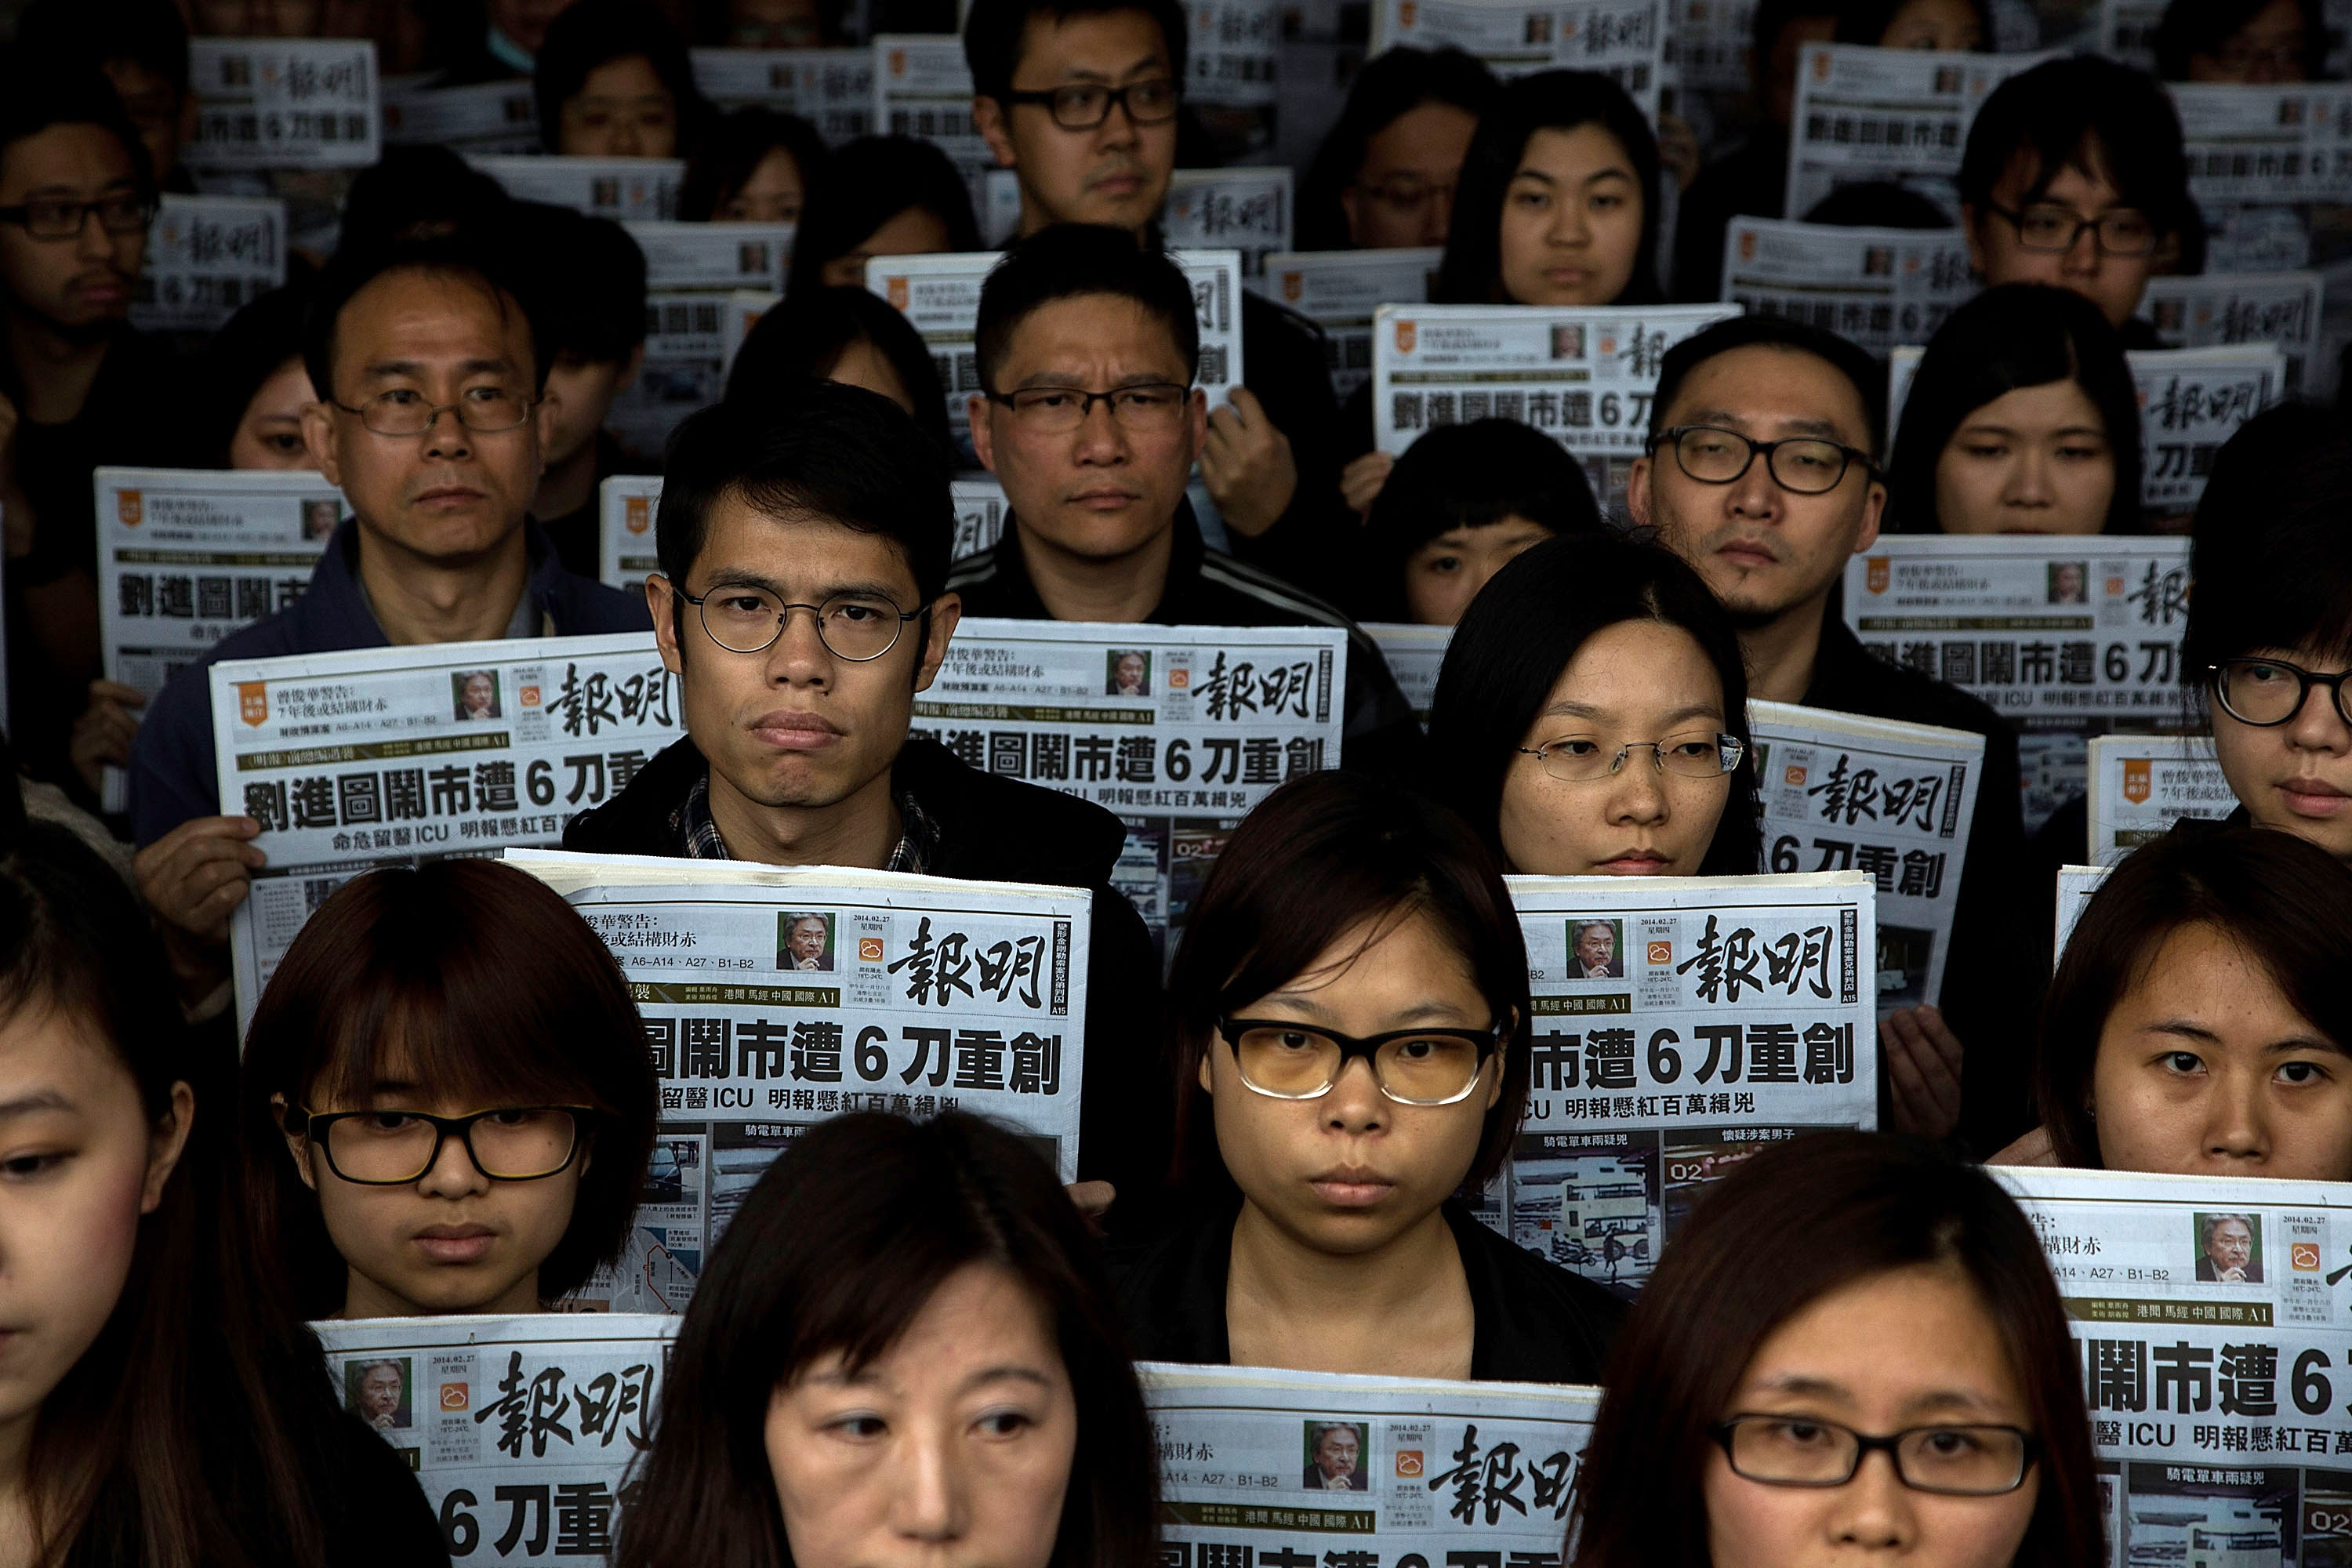 I Call the Shots, Under Fire Hong Kong Newspaper Editor Declares as Staff Protest Lead Story Change